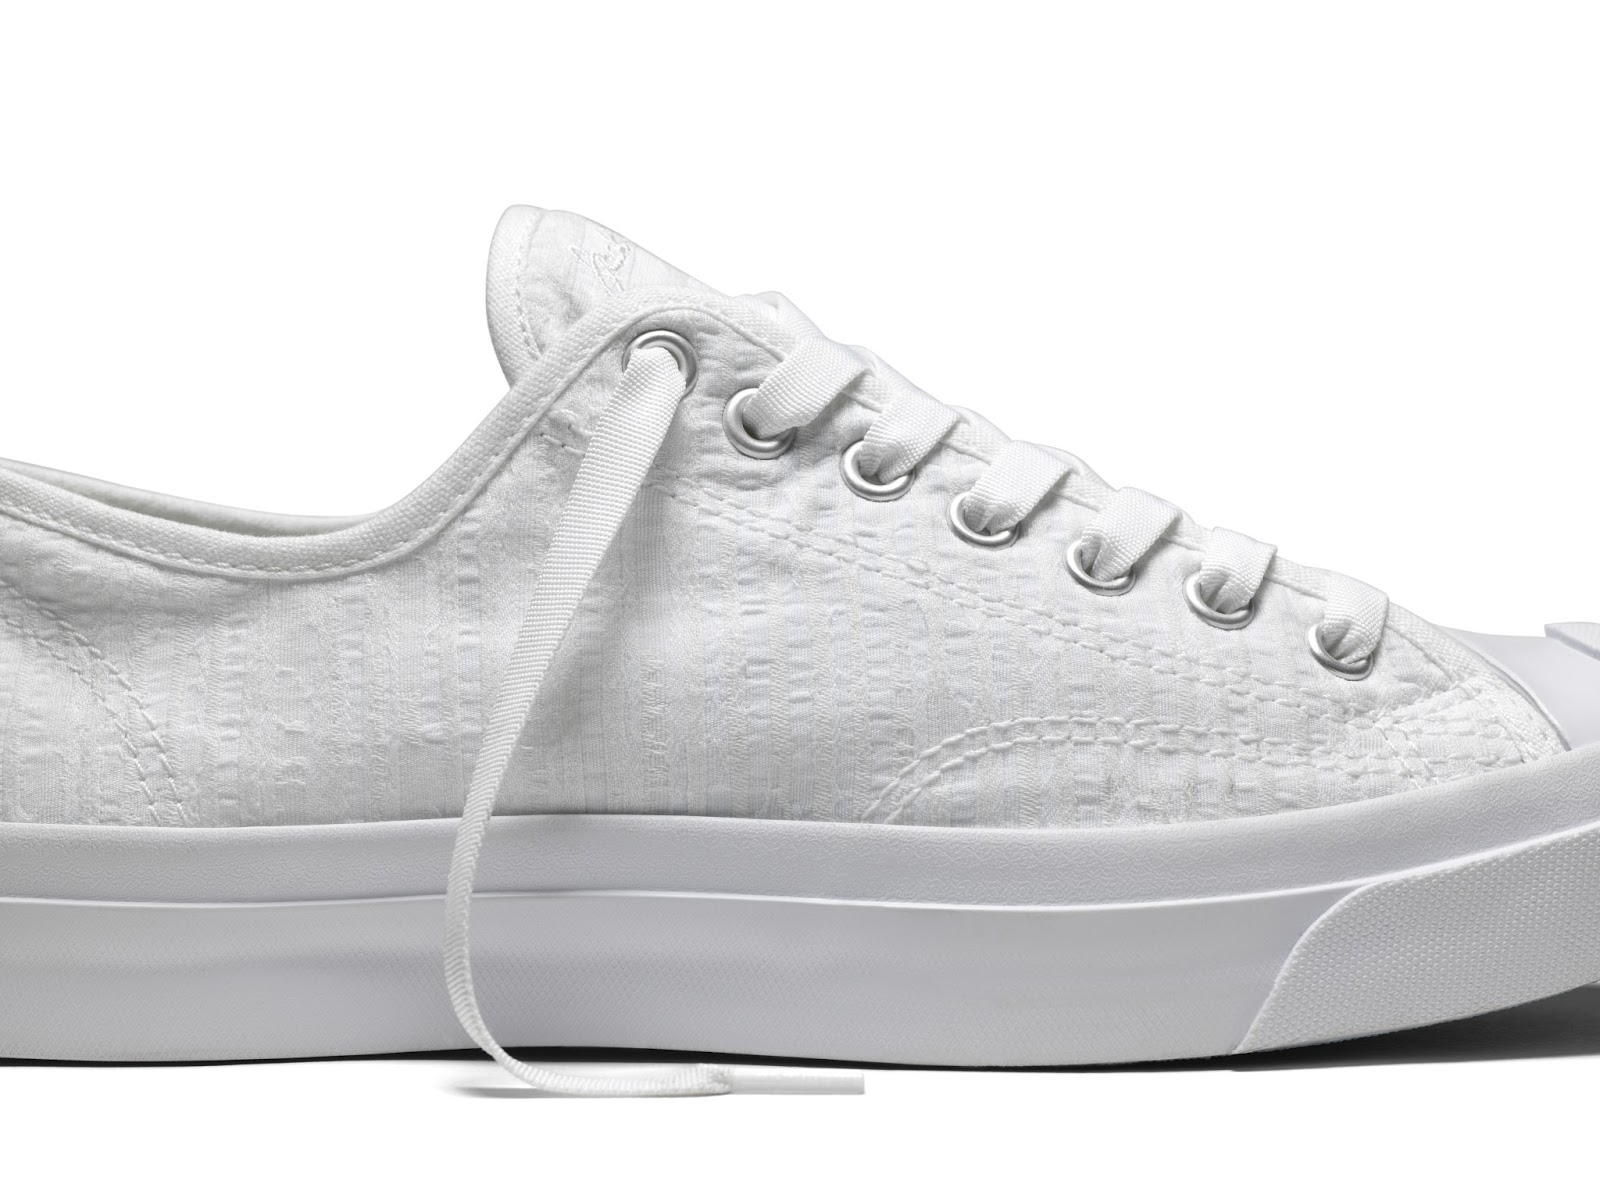 3017001a675f Converse Jack Purcell Remastered in Seersucker in white and inked are now  available in Converse shops nationwide for Php 3